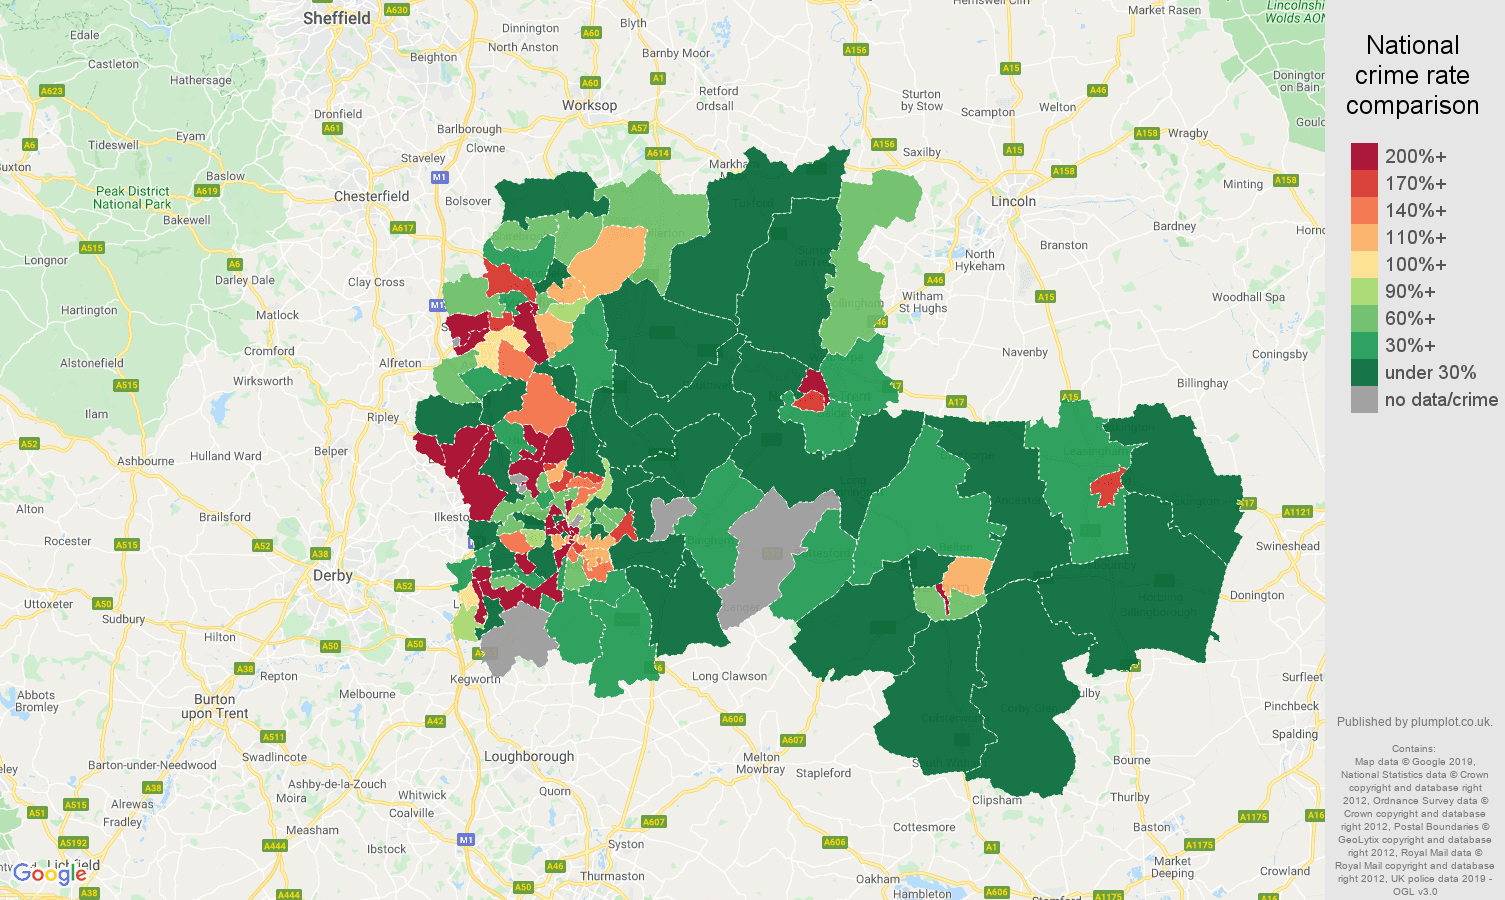 Nottingham shoplifting crime rate comparison map